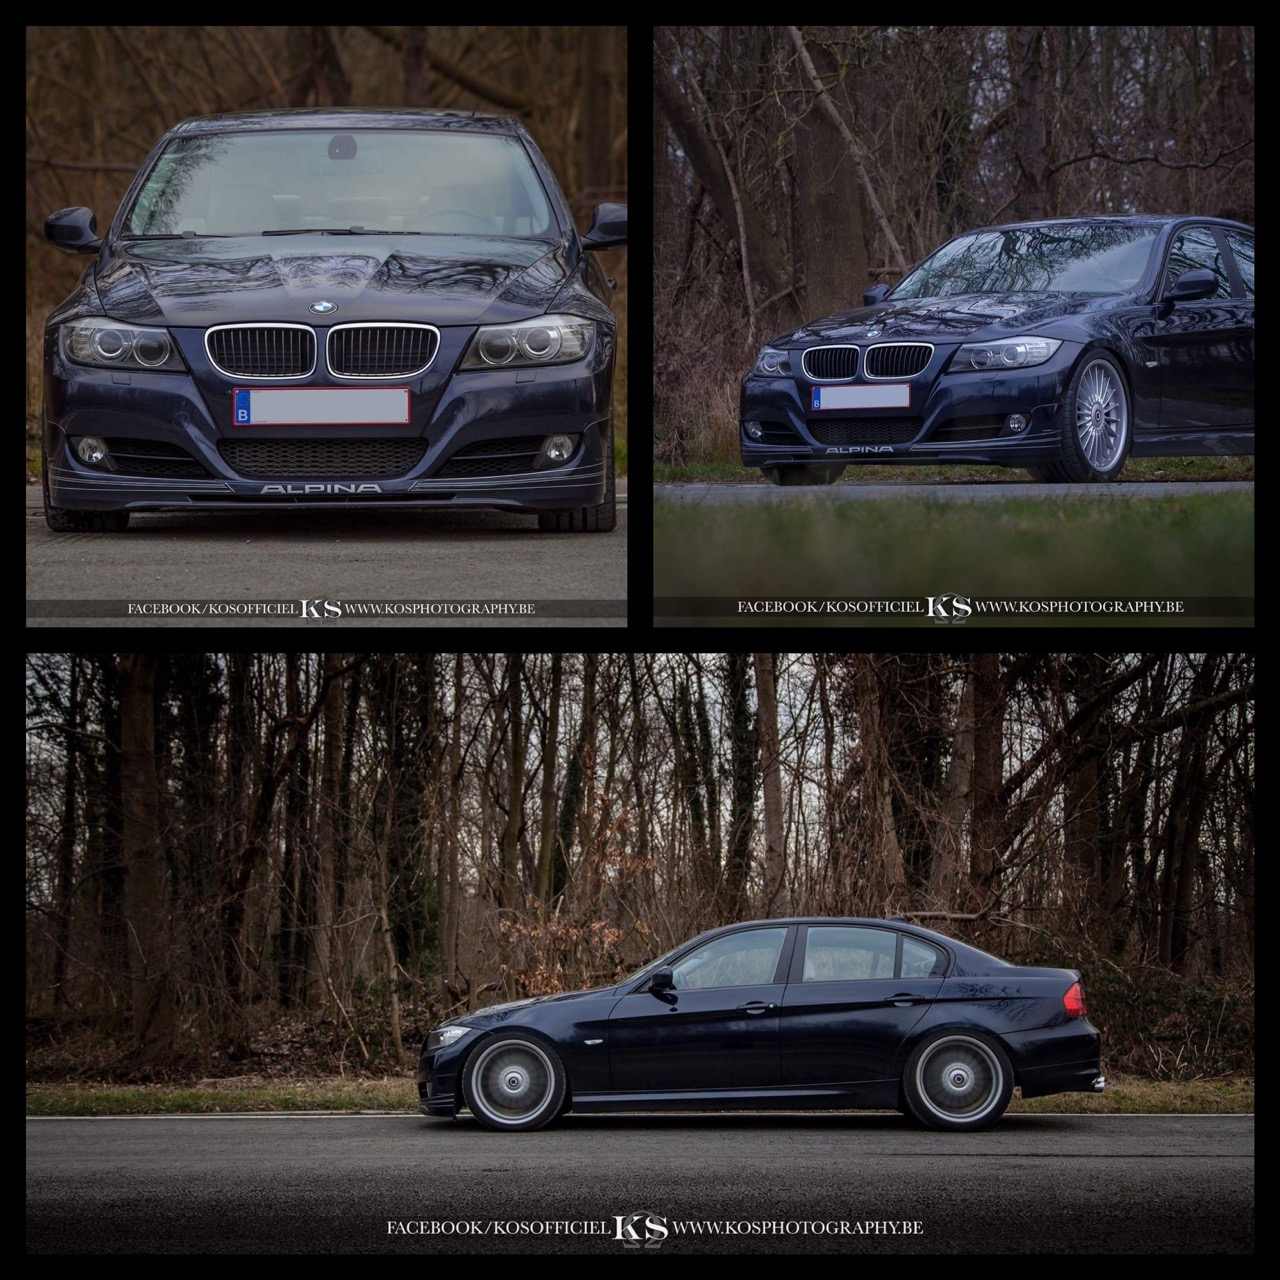 #Petrolhead : Costa Xouras / KΩS photography - Serial Shooter ! 5